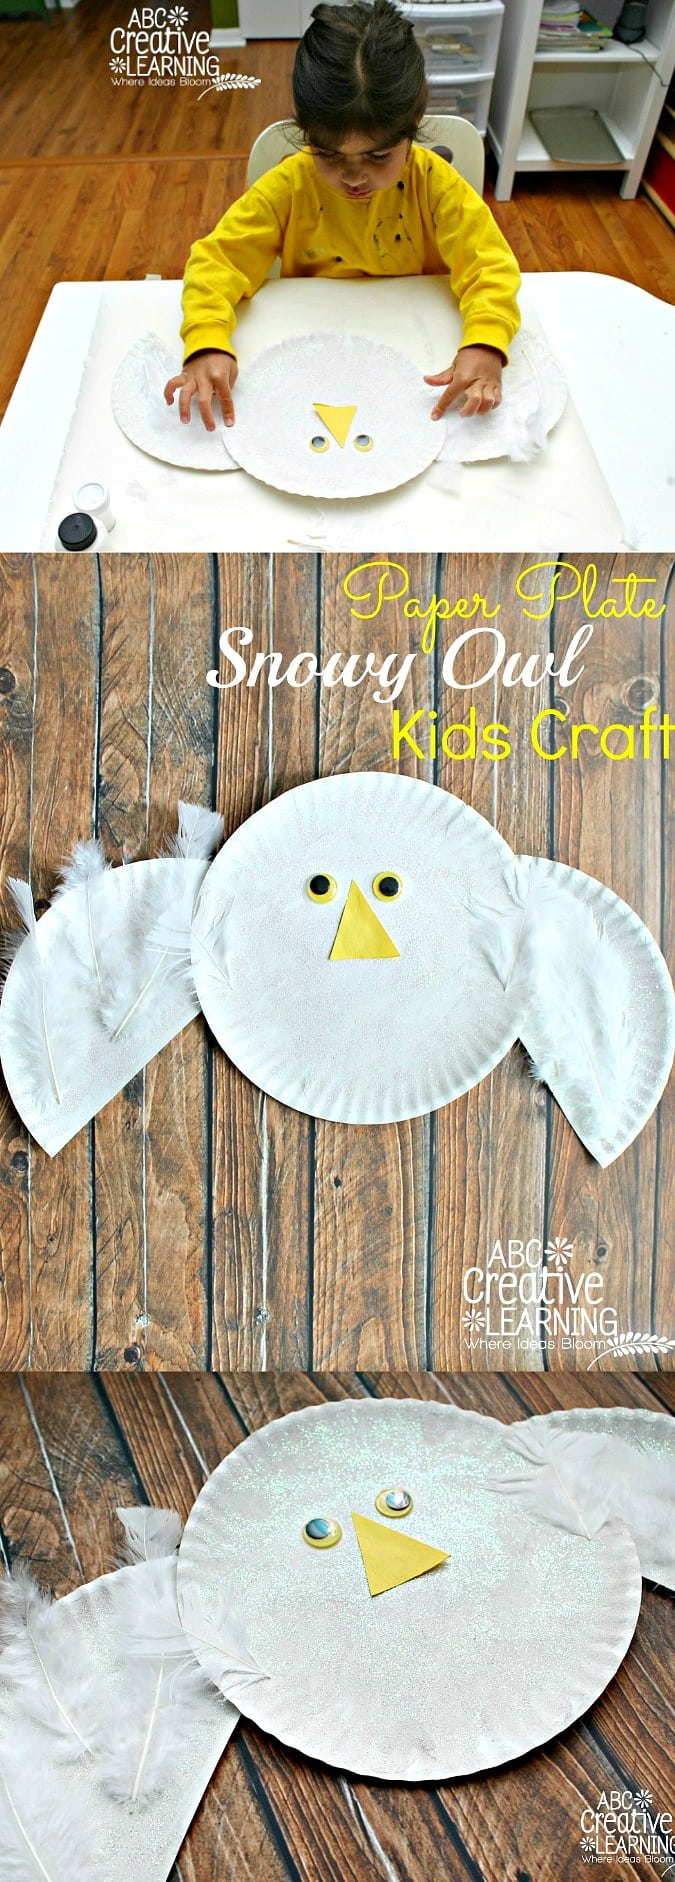 Paper Plate Snowy Owl Kids Craft - simplytodaylife.com